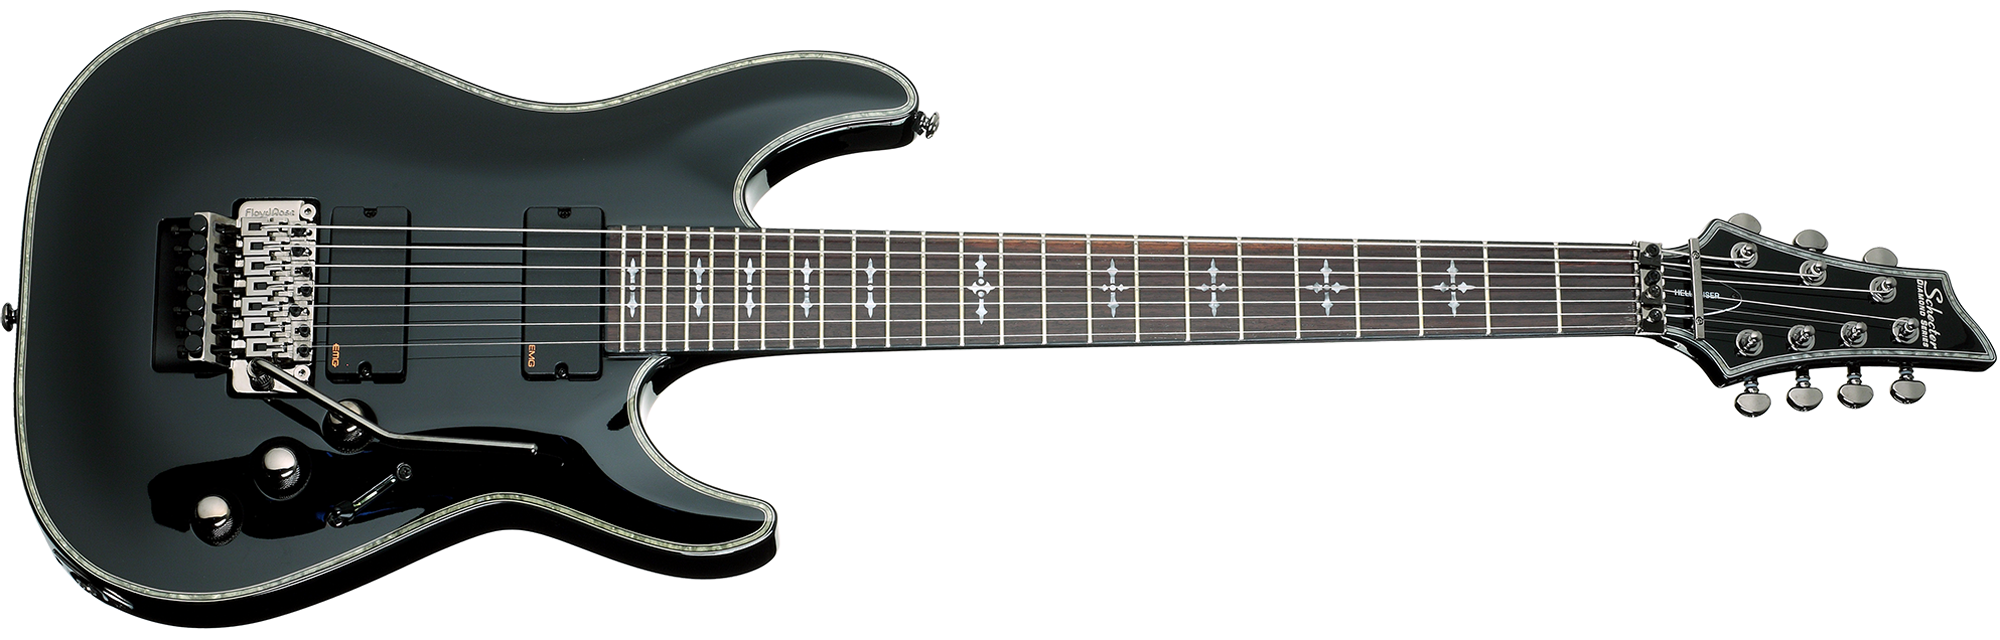 Hellraiser C-7 FR Gloss Black (BLK) SKU #1813